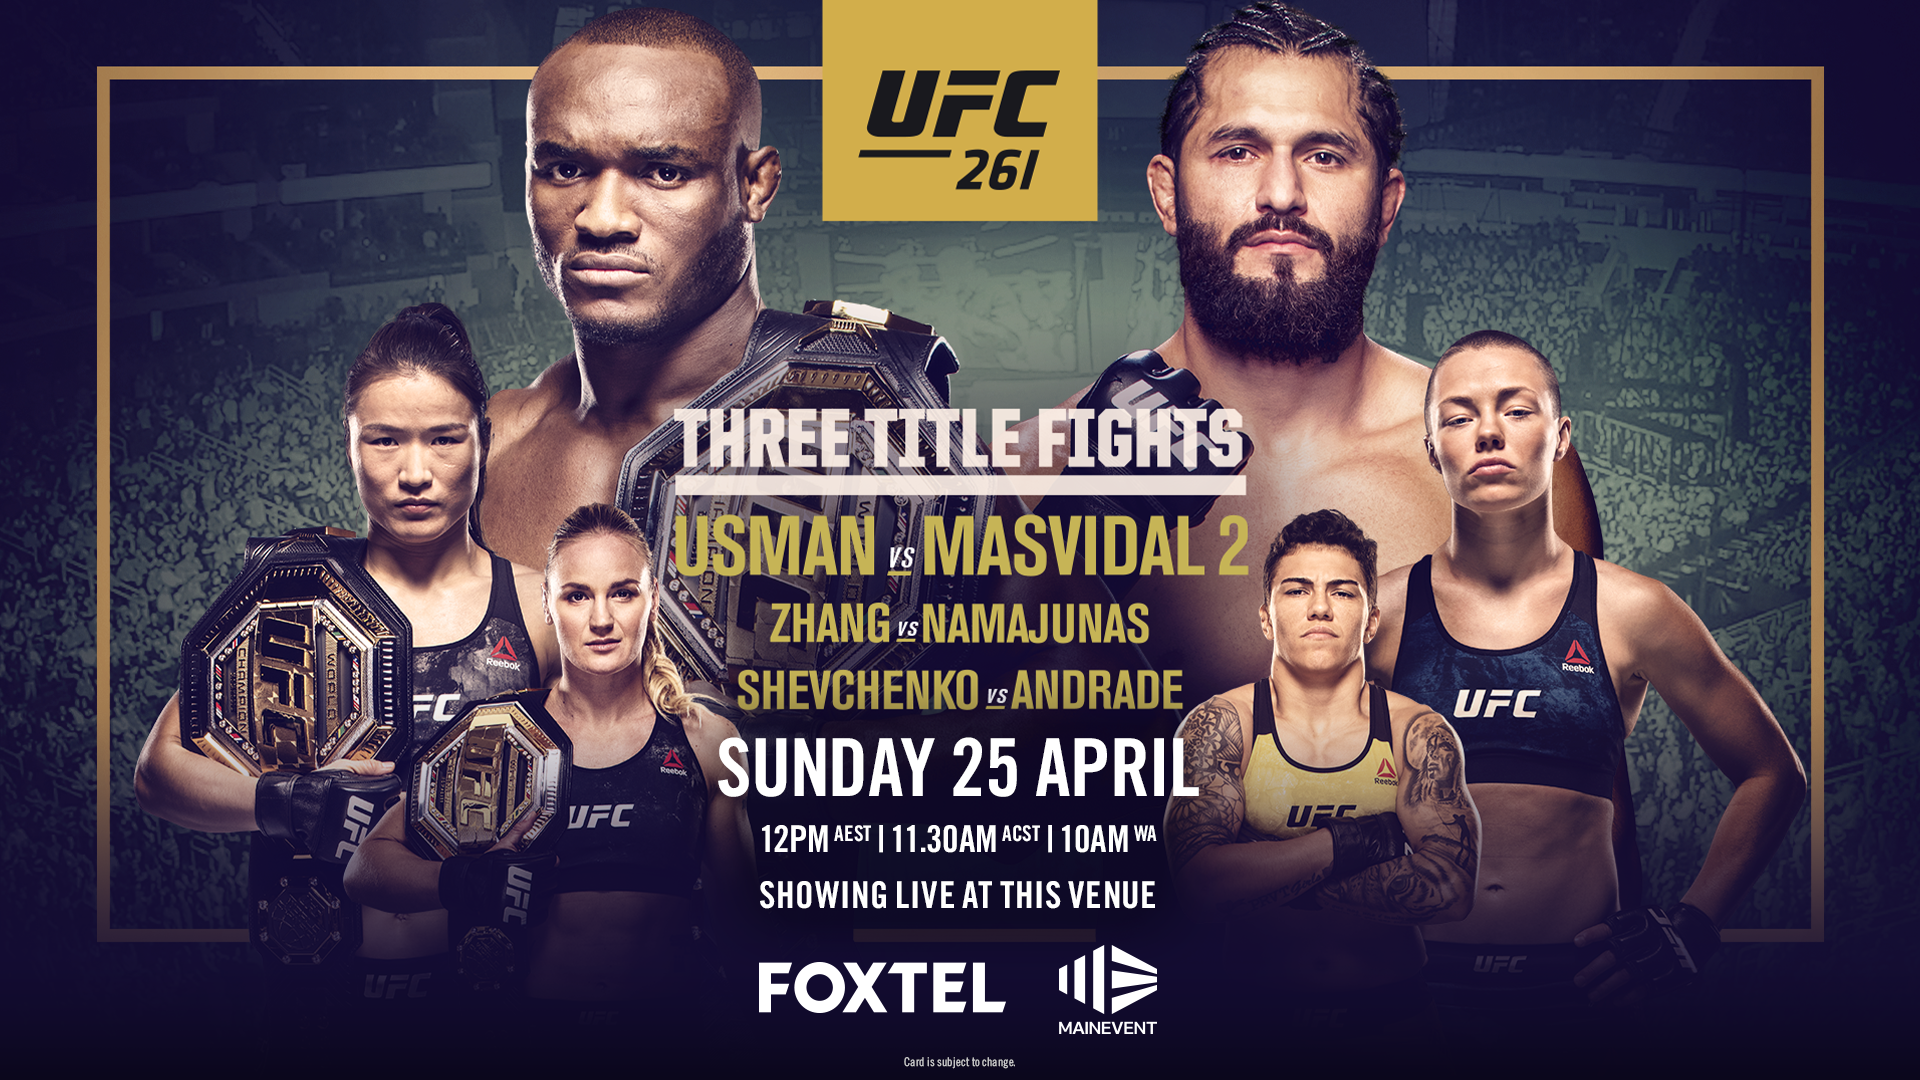 UFC261 at Tradies Helensburgh